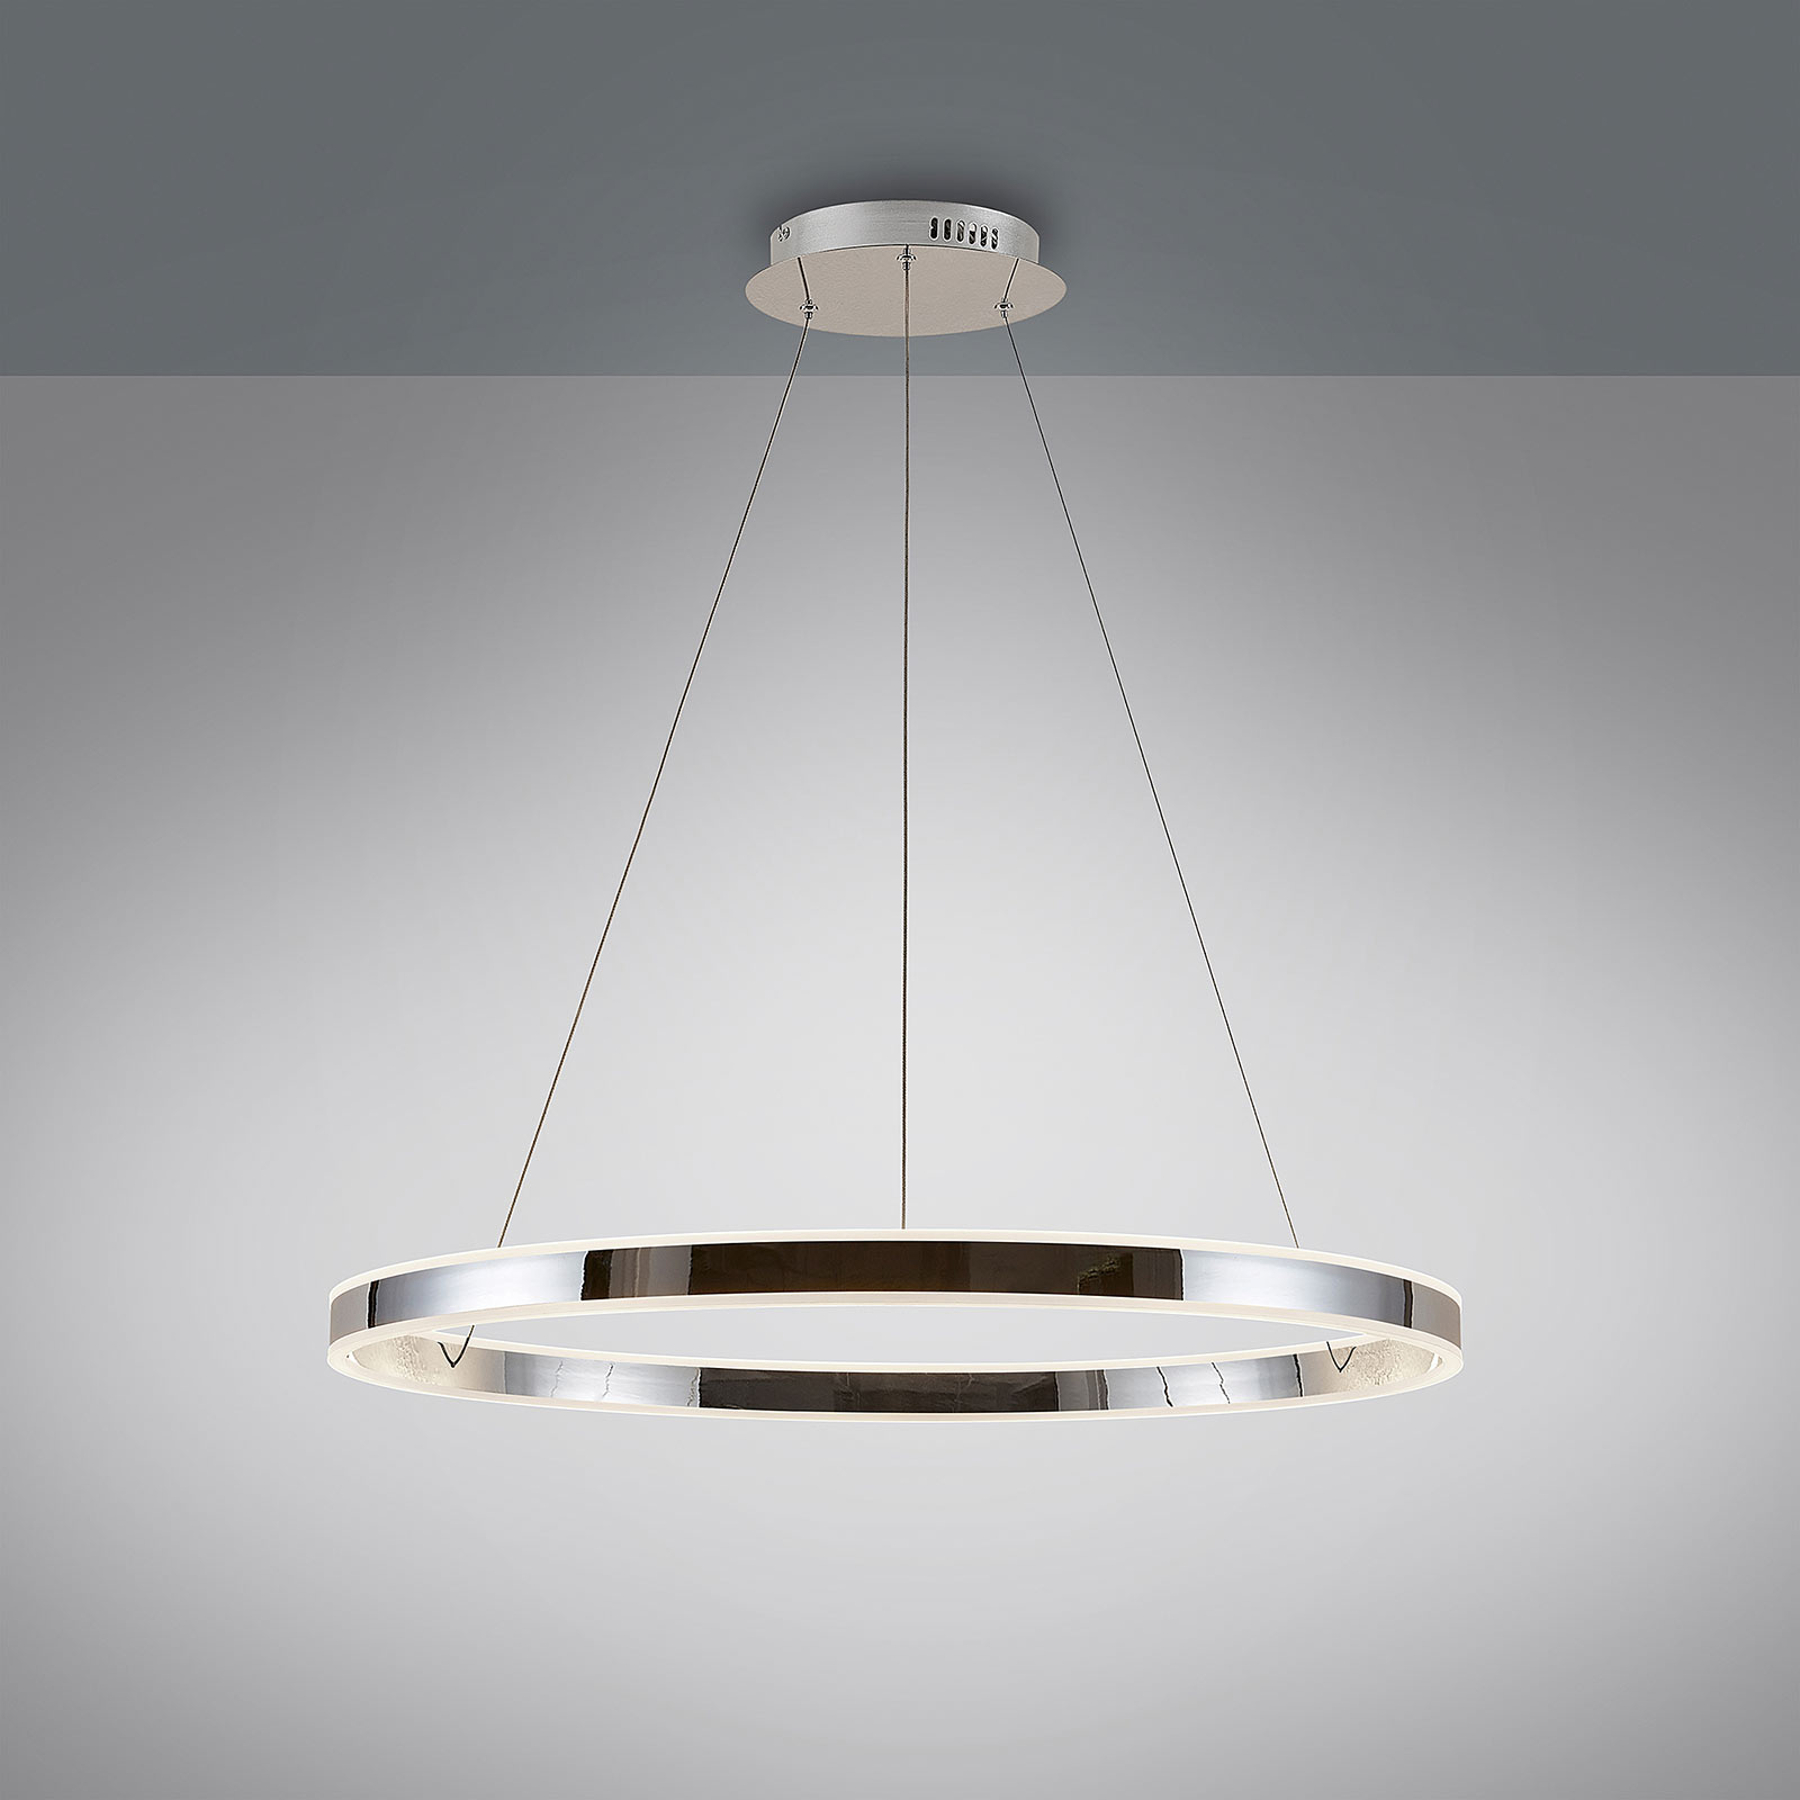 LED-Pendelleuchte Lyani in Chrom, dimmbar, 80 cm